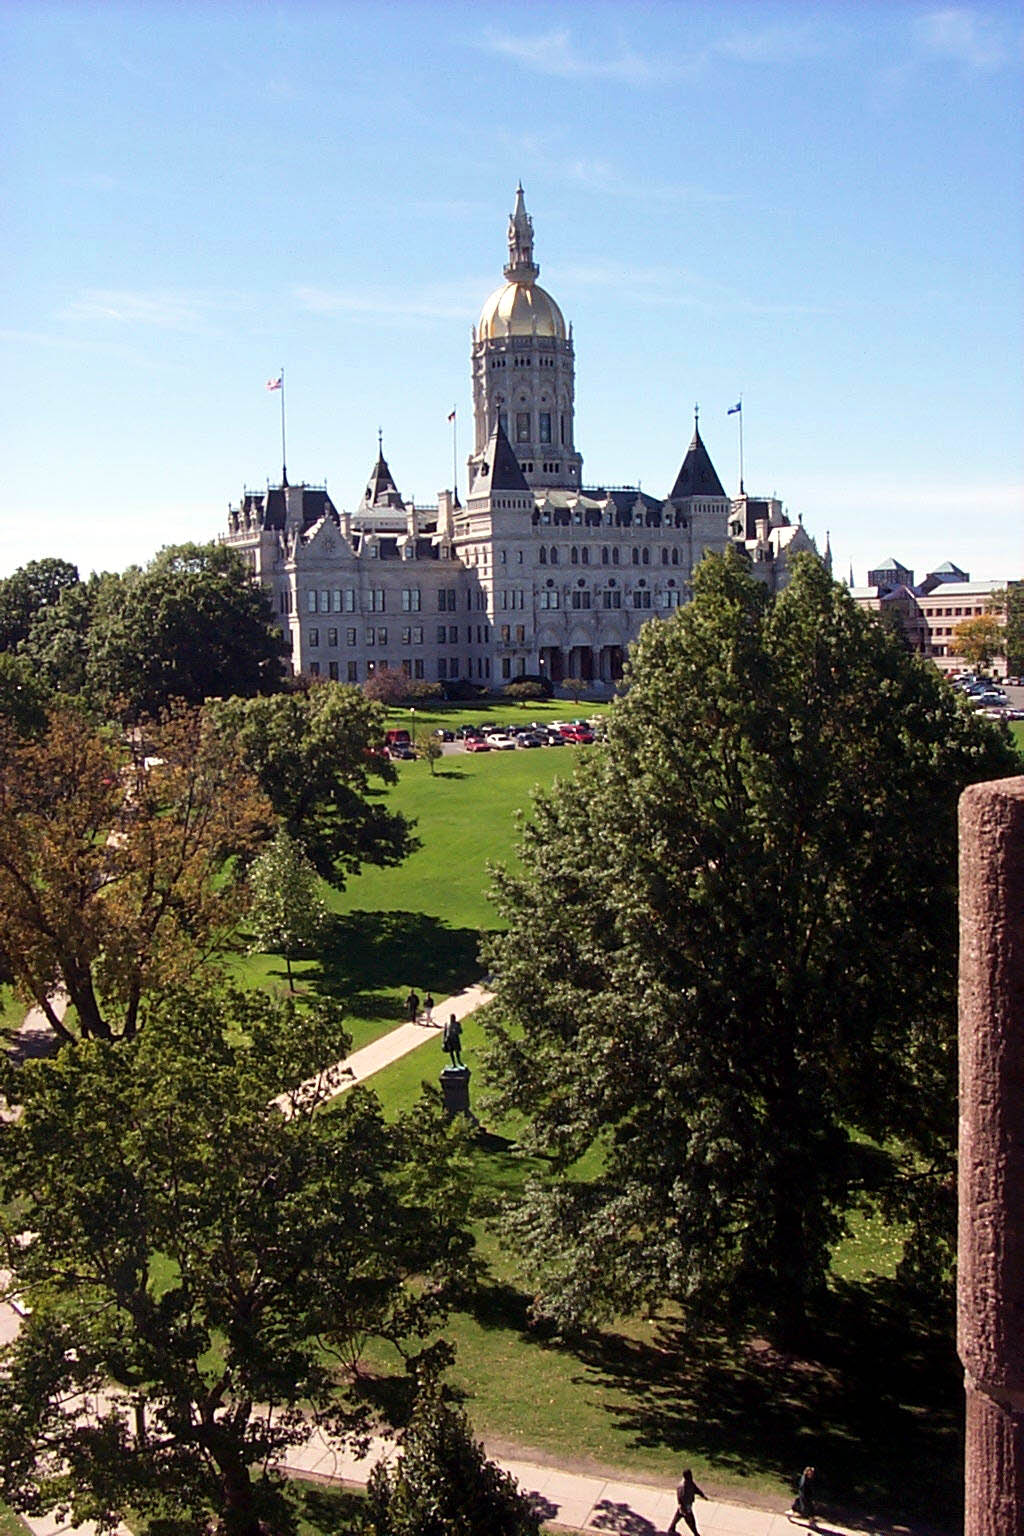 The Capitol as seen from the Soldiers and Sailors Memorial Arch